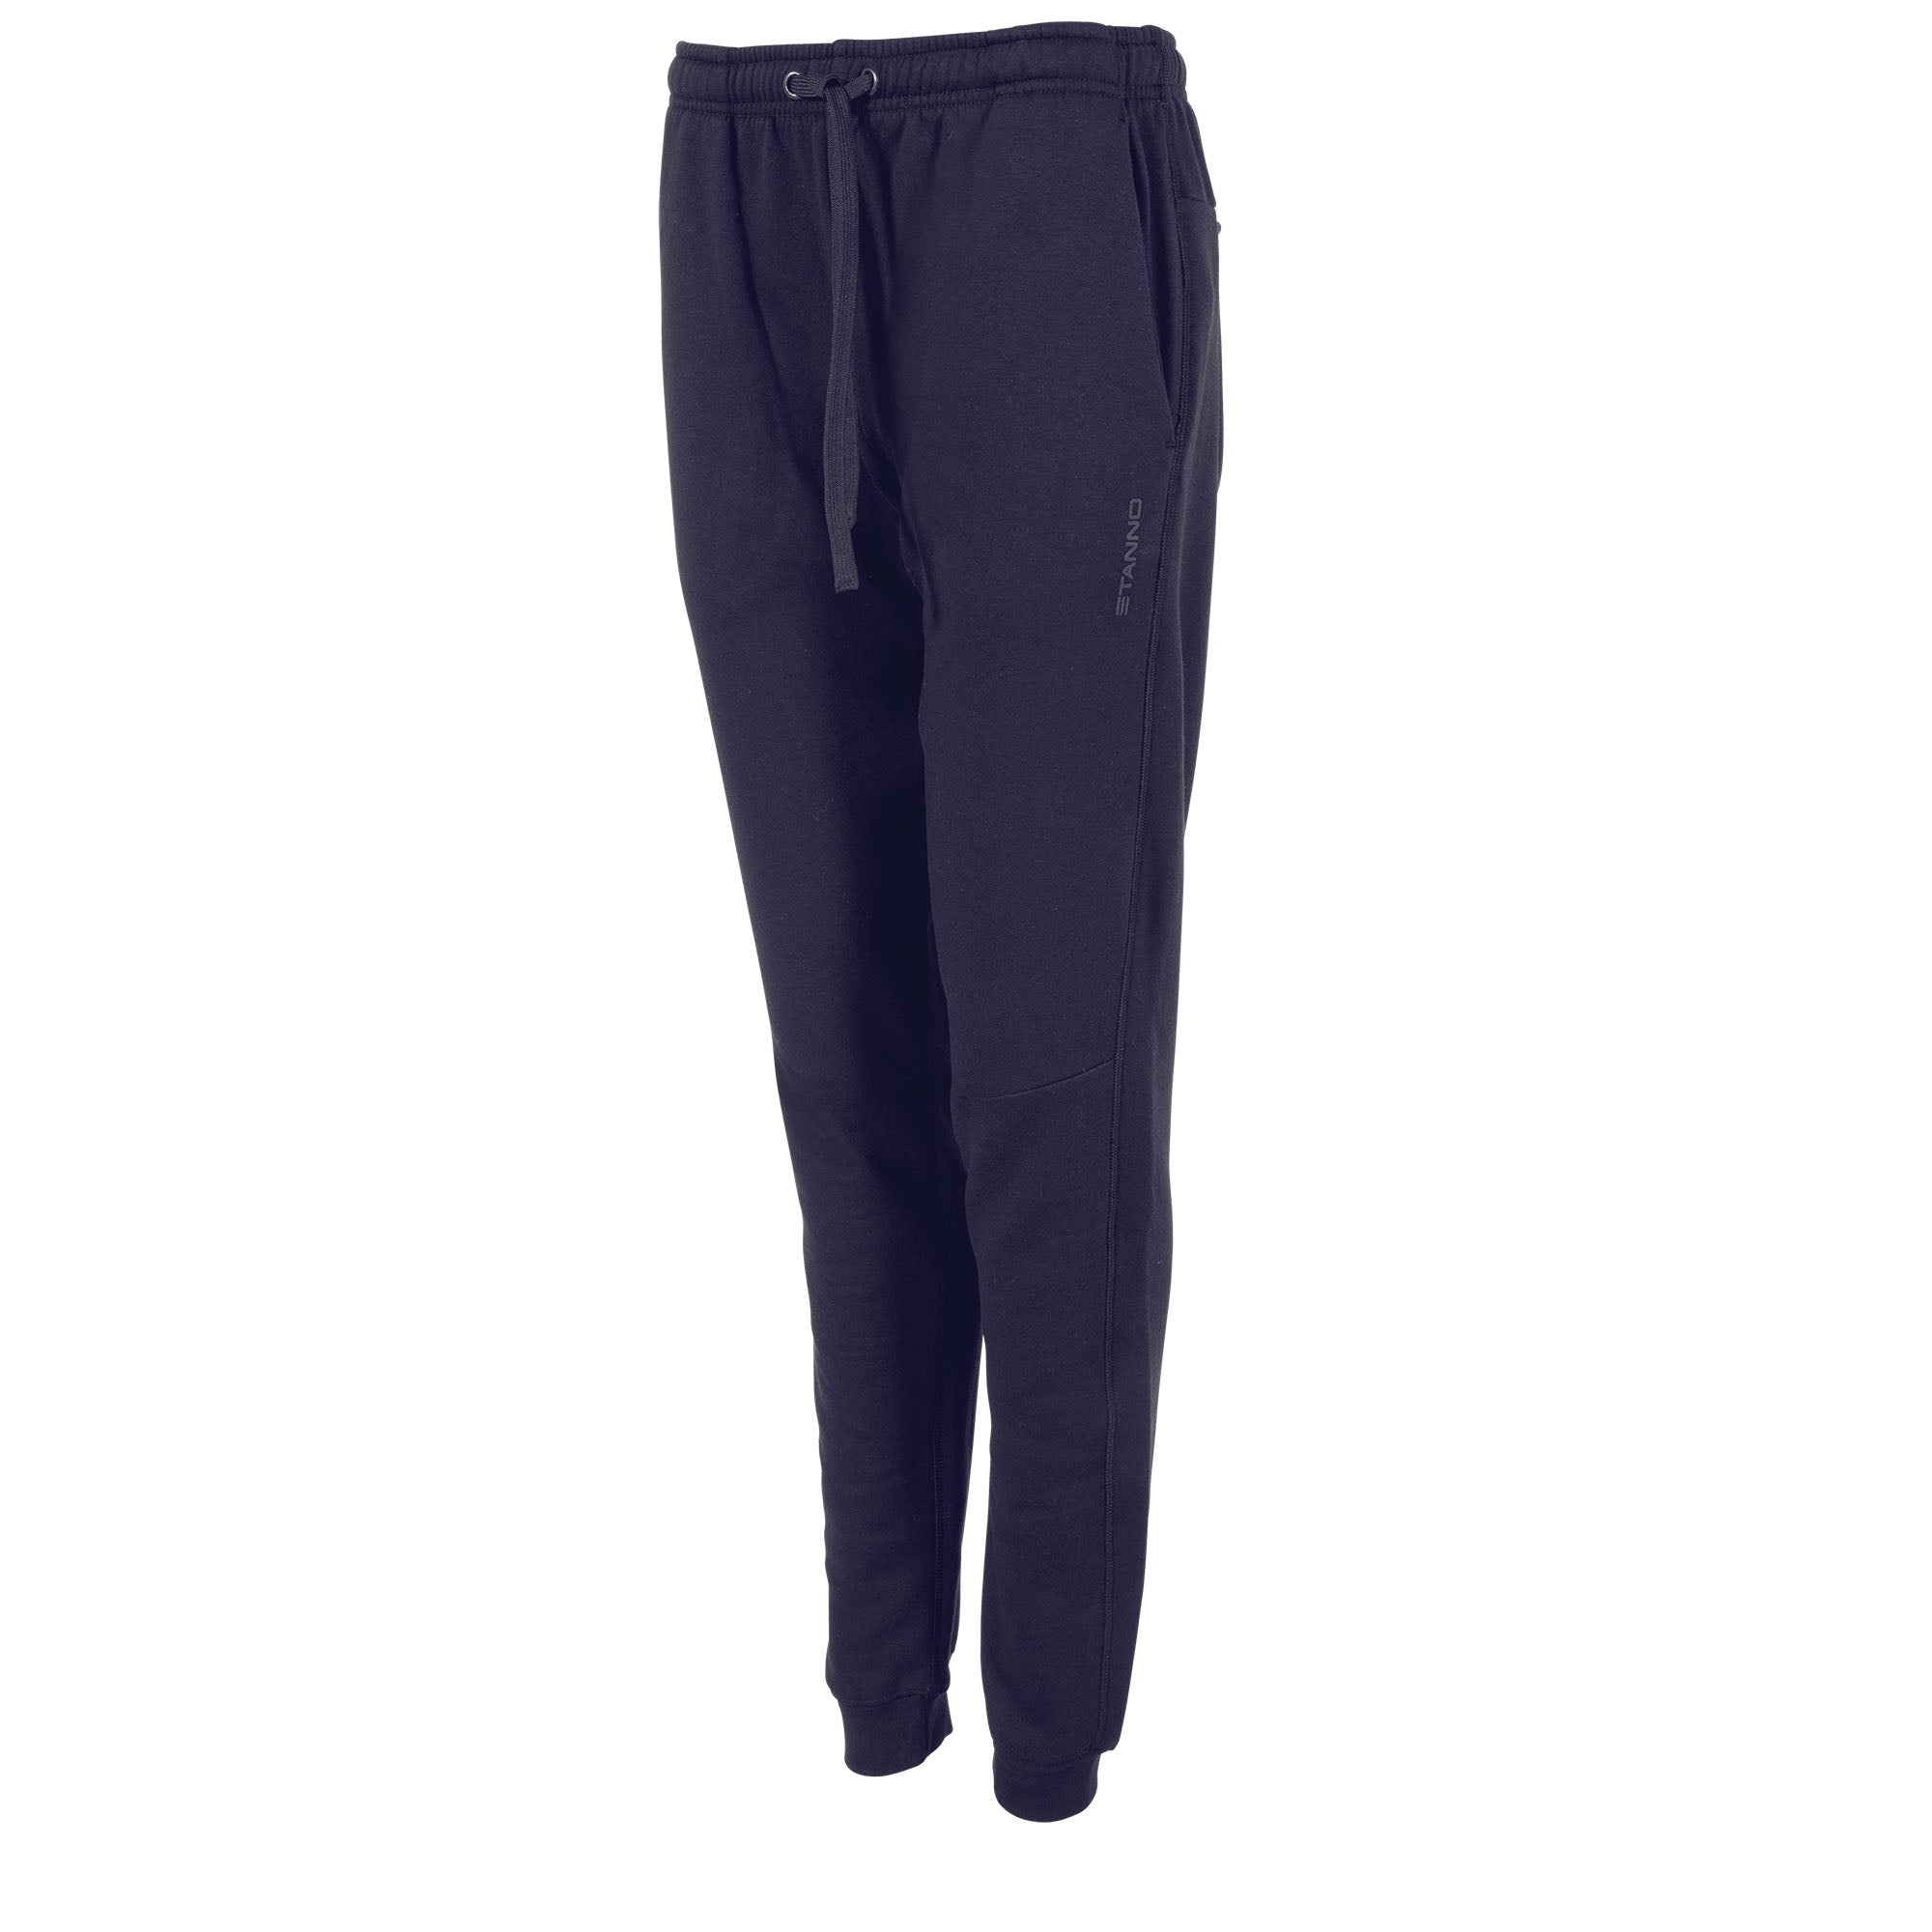 Front view of navy Stanno Ease Sweat Pants ladies with 2 side pockets and drawstring cord on waistband.